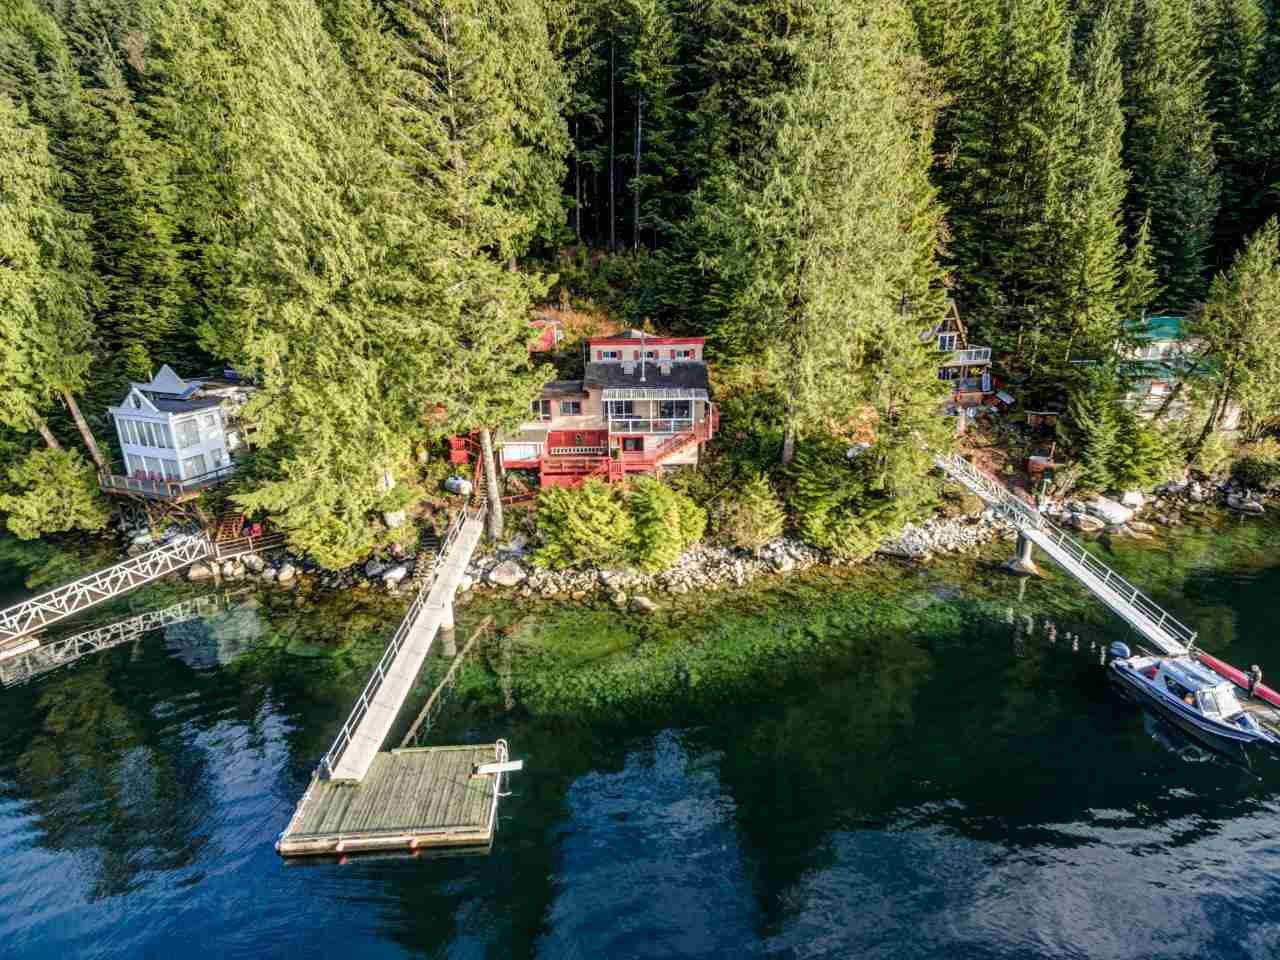 Photo 19: Photos: 26 E OF CROKER ISLAND in North Vancouver: Indian Arm House for sale : MLS®# R2424254